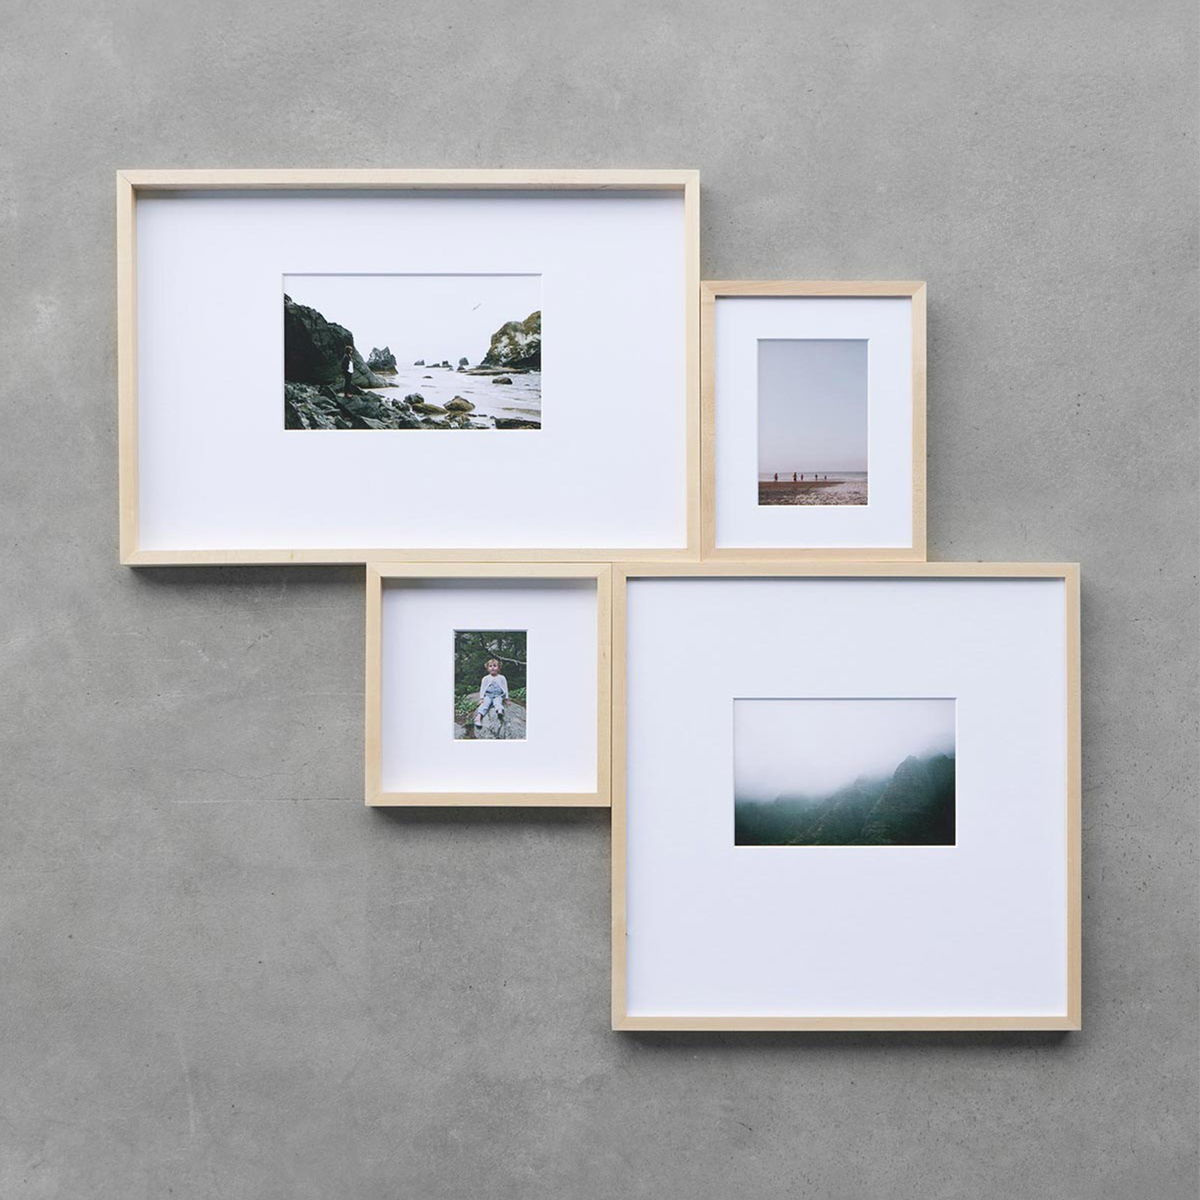 Four small maple frames of different sizes brought together in uniquely shaped gallery wall